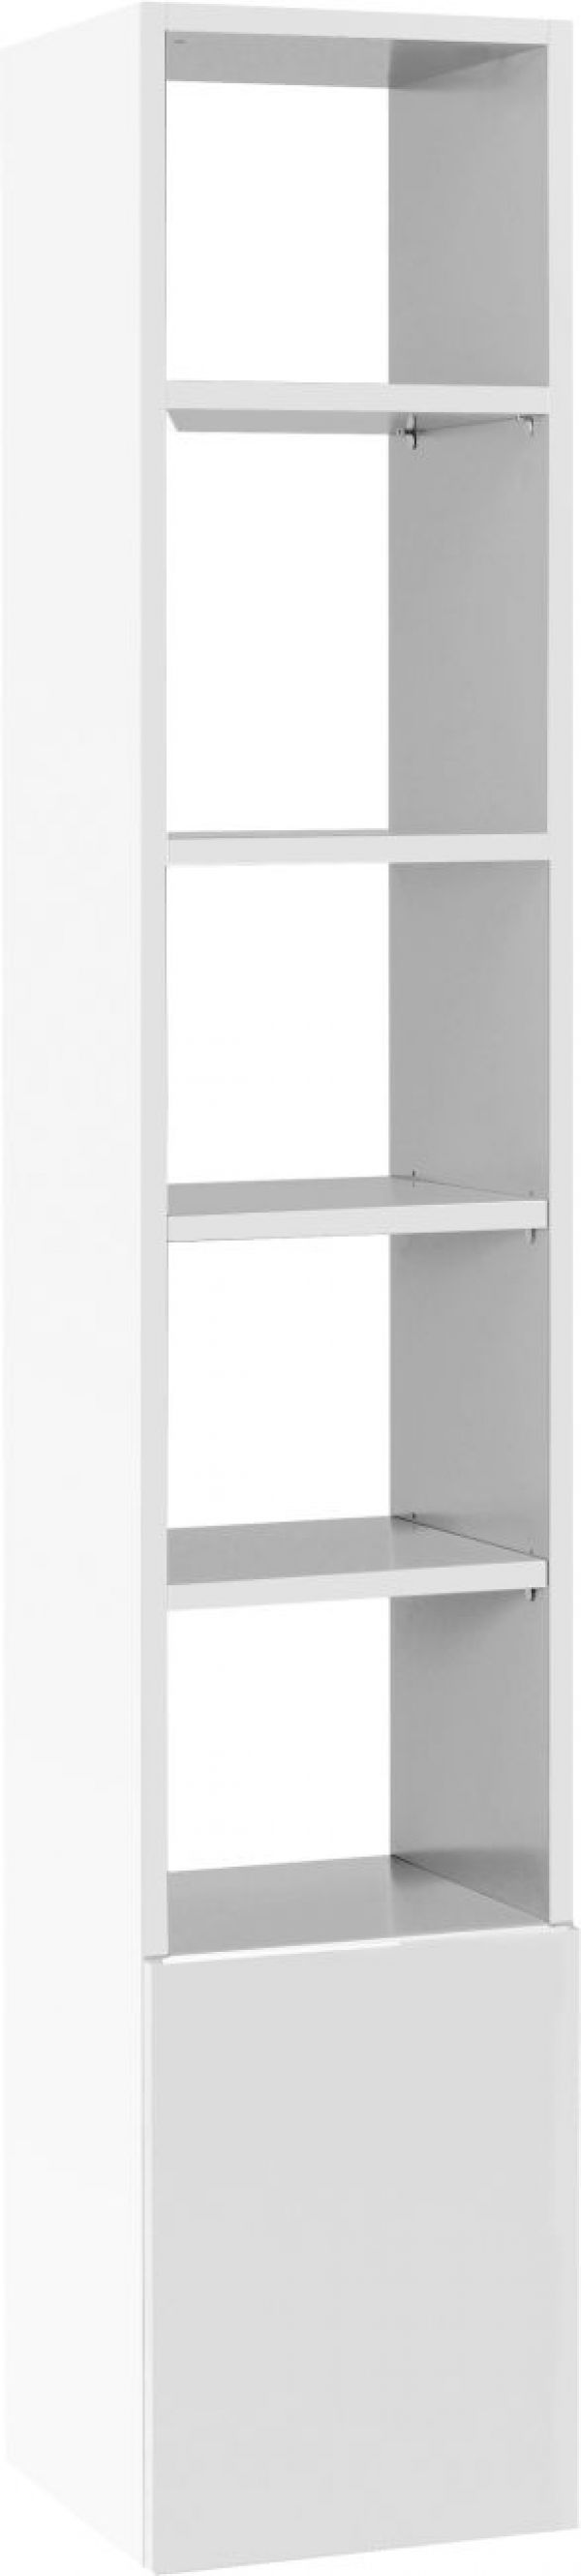 unit shelf eurway temahome call by wind to shelving white shelves contemporary modern order